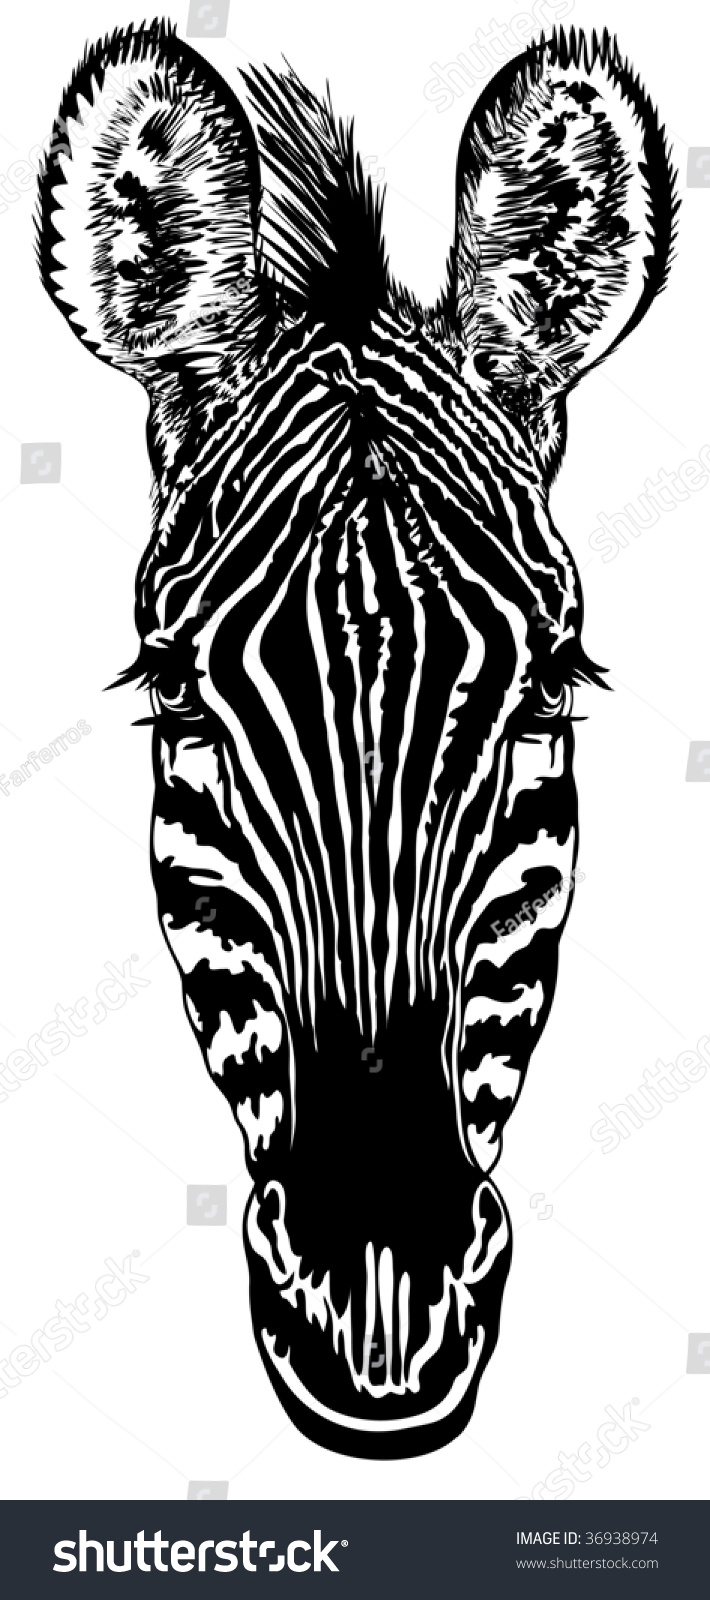 Blackandwhite Striped Drawing Of A Head Of A Zebra Blackandwhite Striped  Drawing Head Zebra Stock Vector